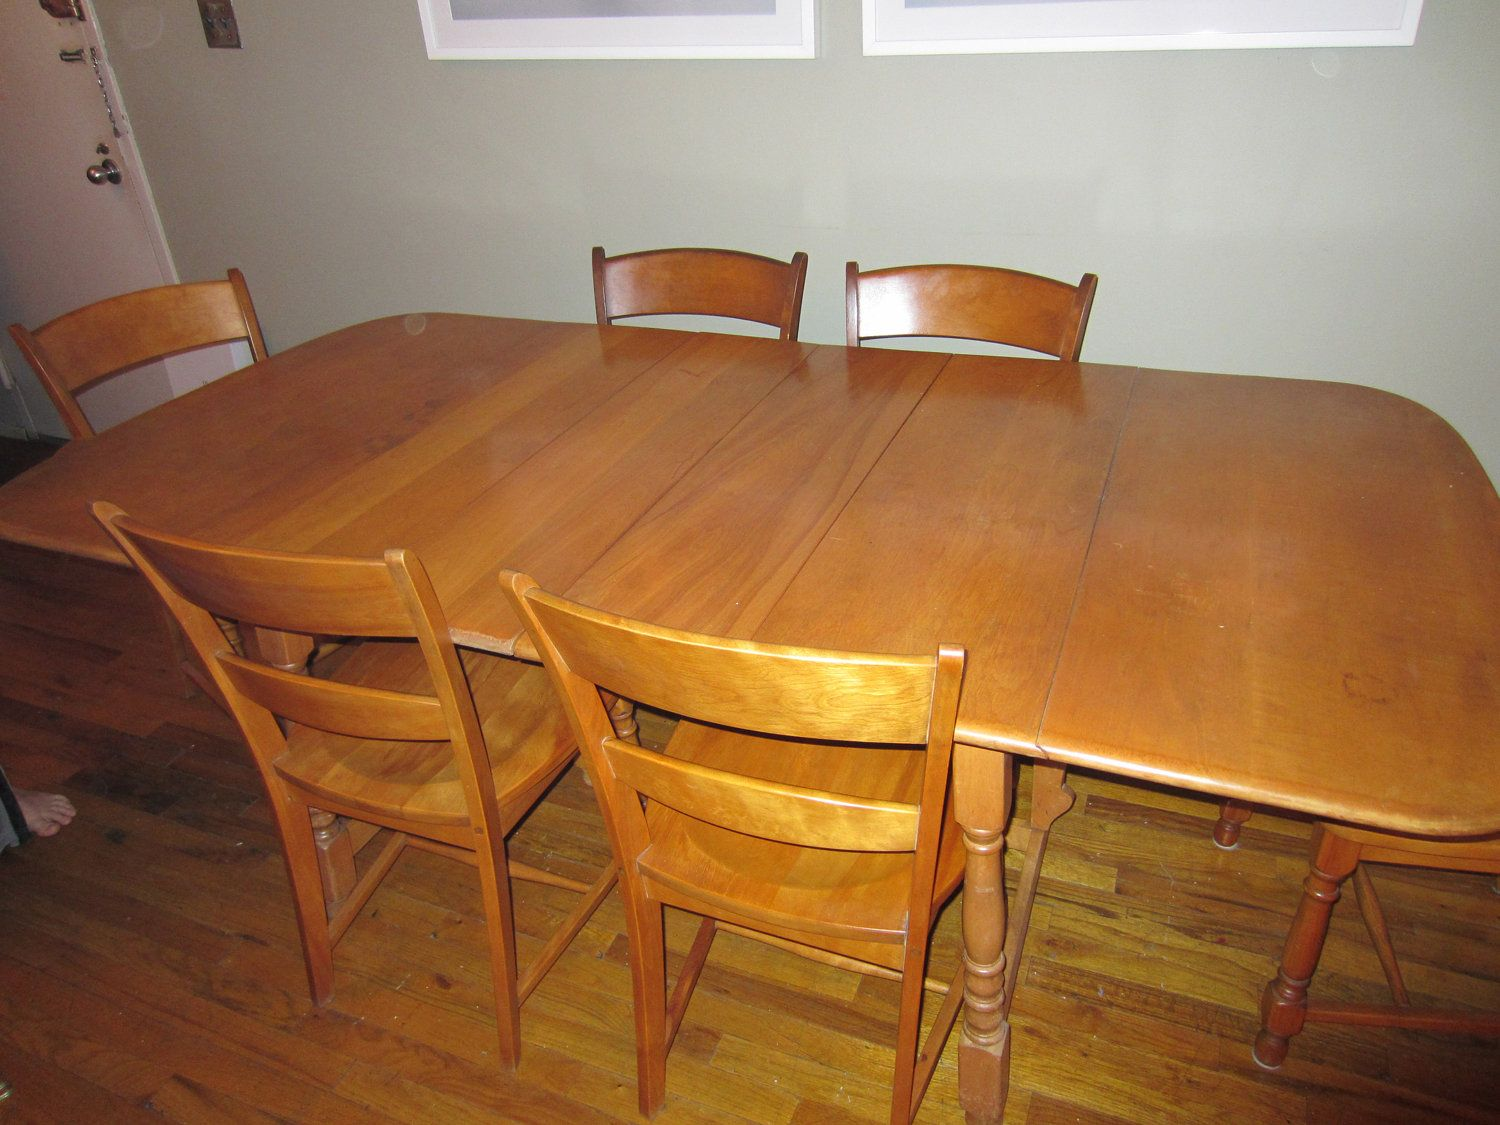 Heywood Wakefield Table And Chairs   Cushman Colonial Buffet. $2,500.00,  Via Etsy.